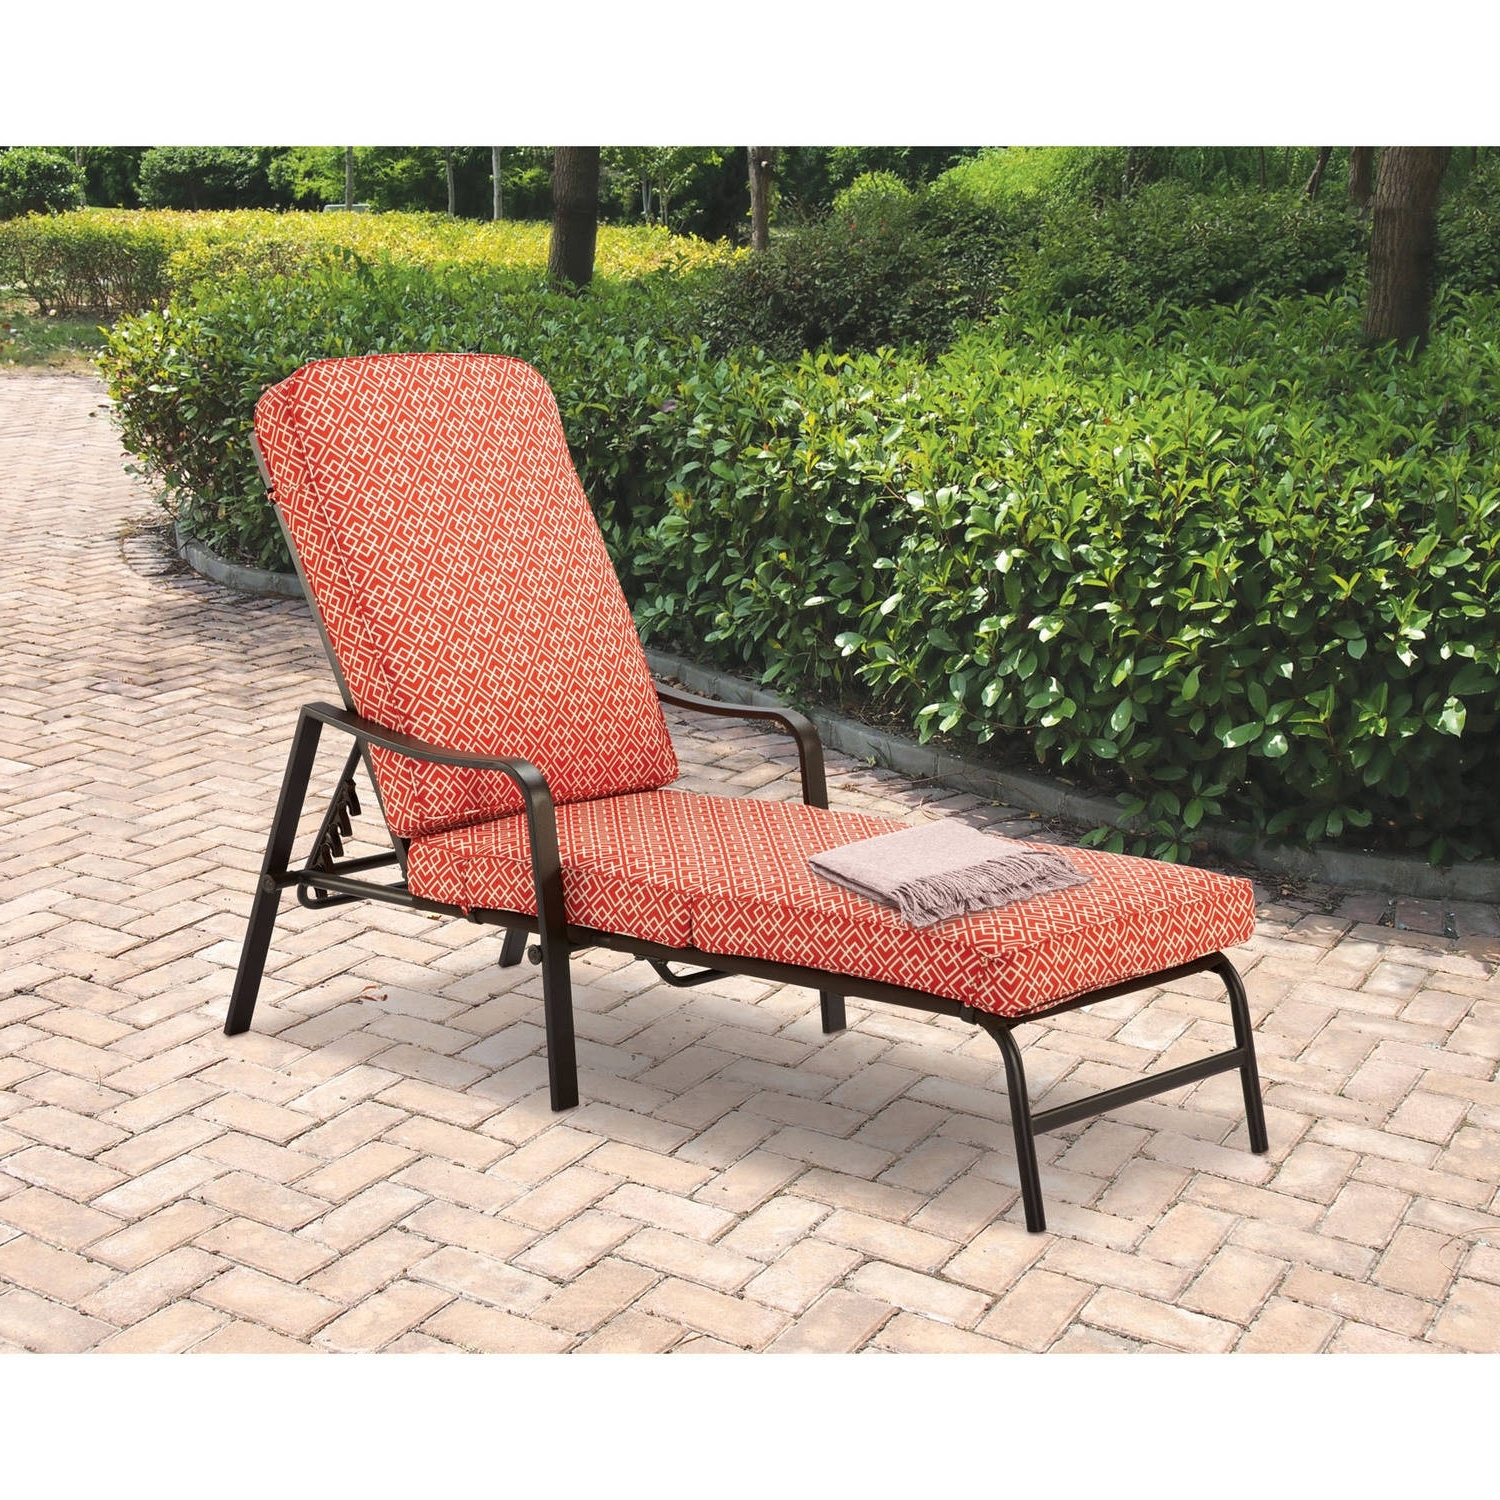 Outdoor Chaise Lounge Chairs At Walmart Intended For Widely Used Mainstays Outdoor Chaise Lounge, Orange Geo Pattern – Walmart (View 8 of 15)